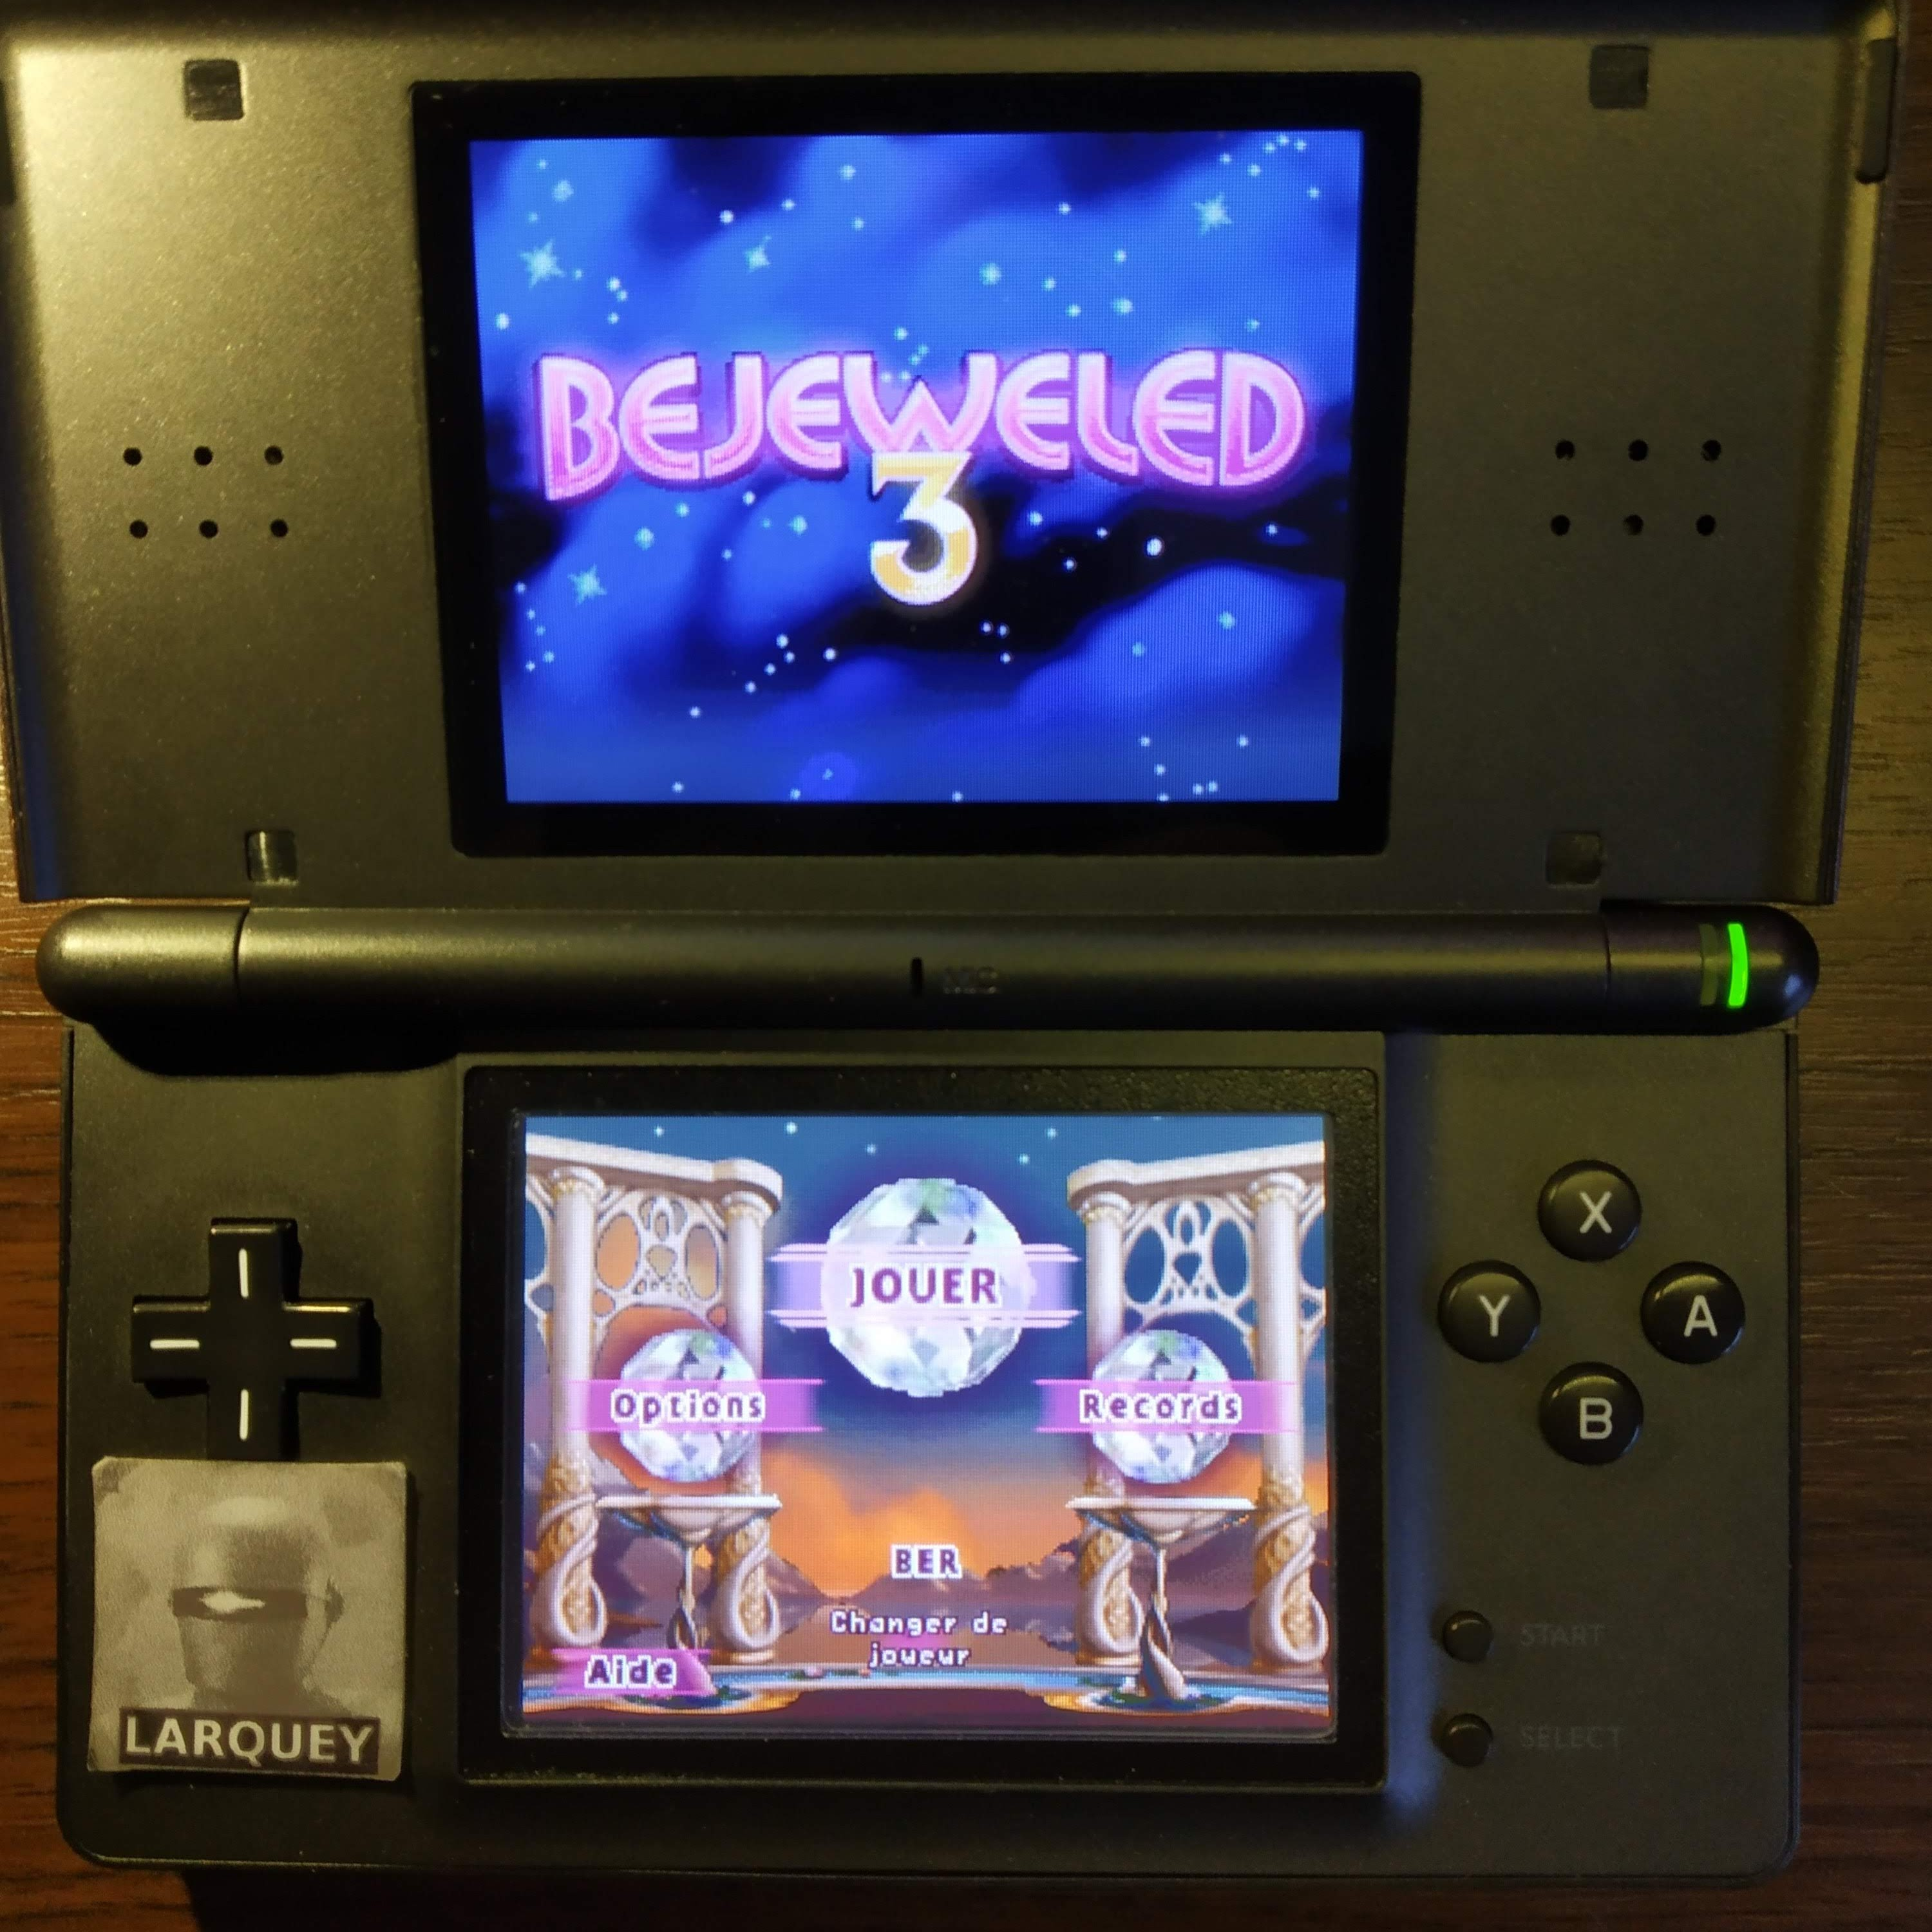 Larquey: Bejeweled 3: Classic [Number of Star Gems] (Nintendo DS) 0 points on 2020-09-24 12:28:27